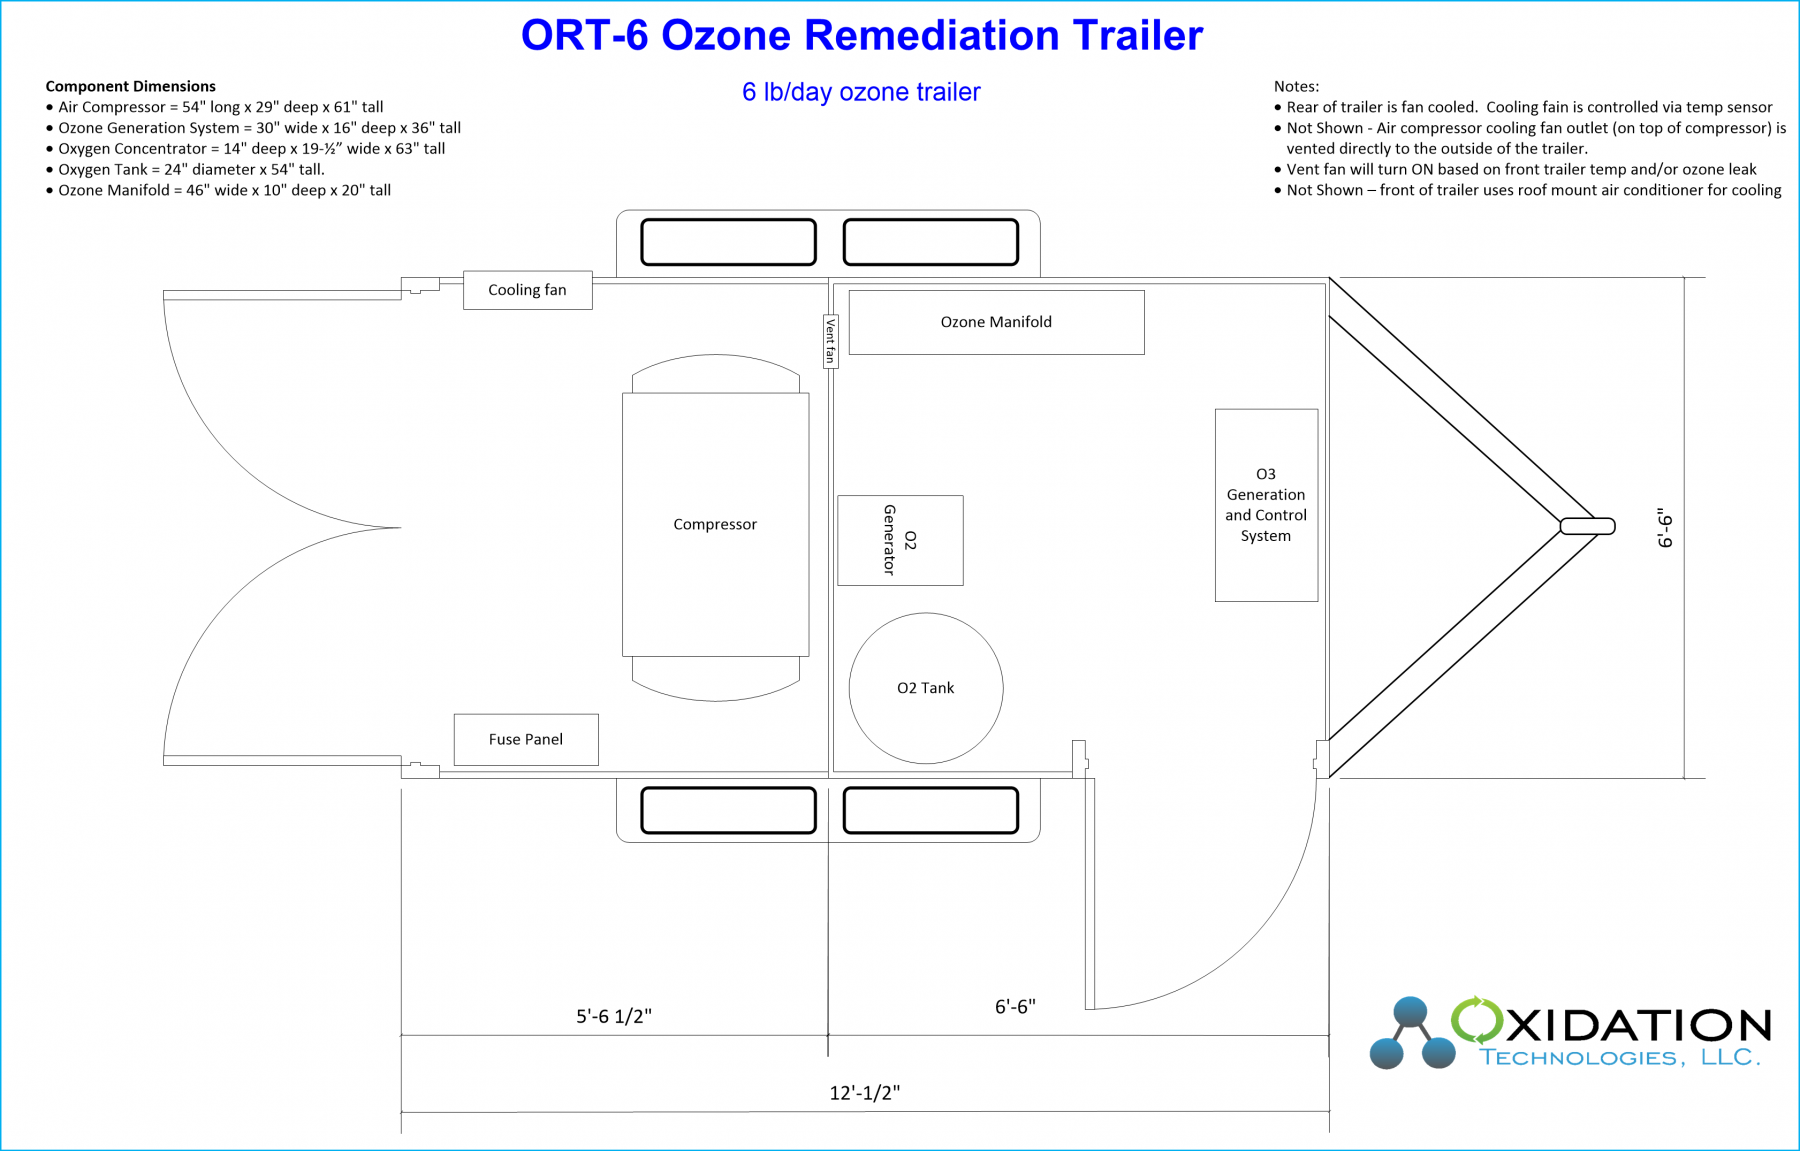 ORT-6 Ozone Remediation Trailer Diagram and layout